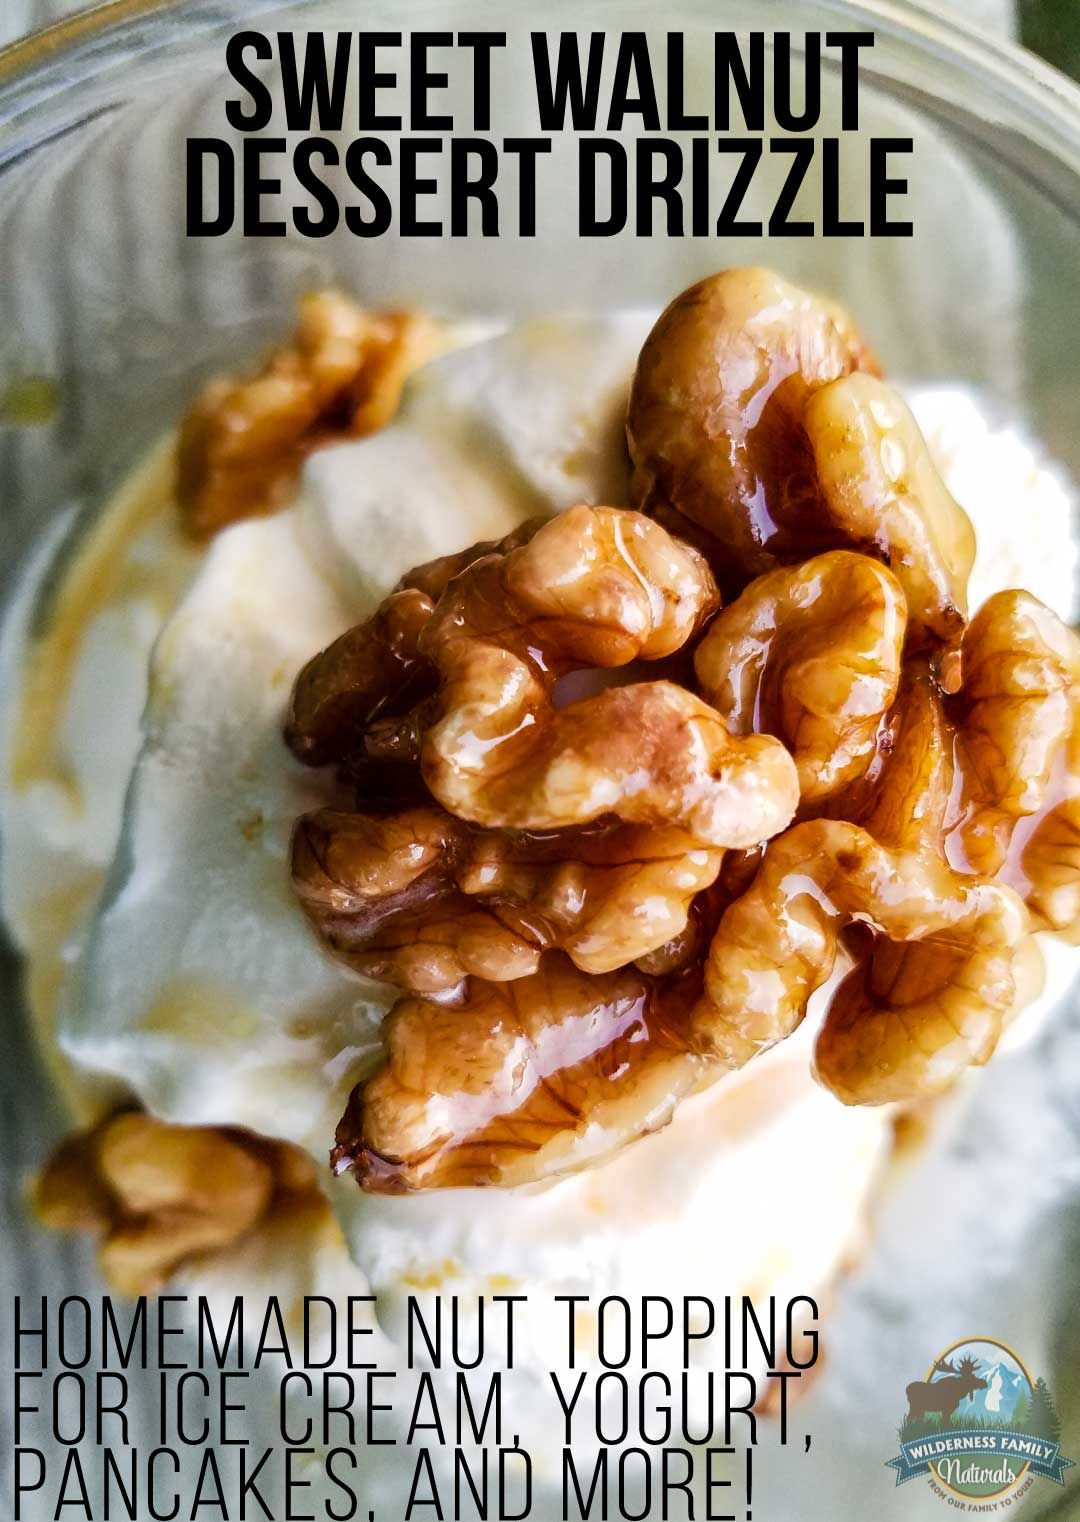 Sweet Walnut Dessert Drizzle   Do you know what makes desserts even better? If you answered more dessert on top of dessert, you would be correct! This homemade nut topping adds a maple-y caramel crunch to everything from ice cream to sweet potatoes to yogurt!   WildernessFamilyNaturals.com